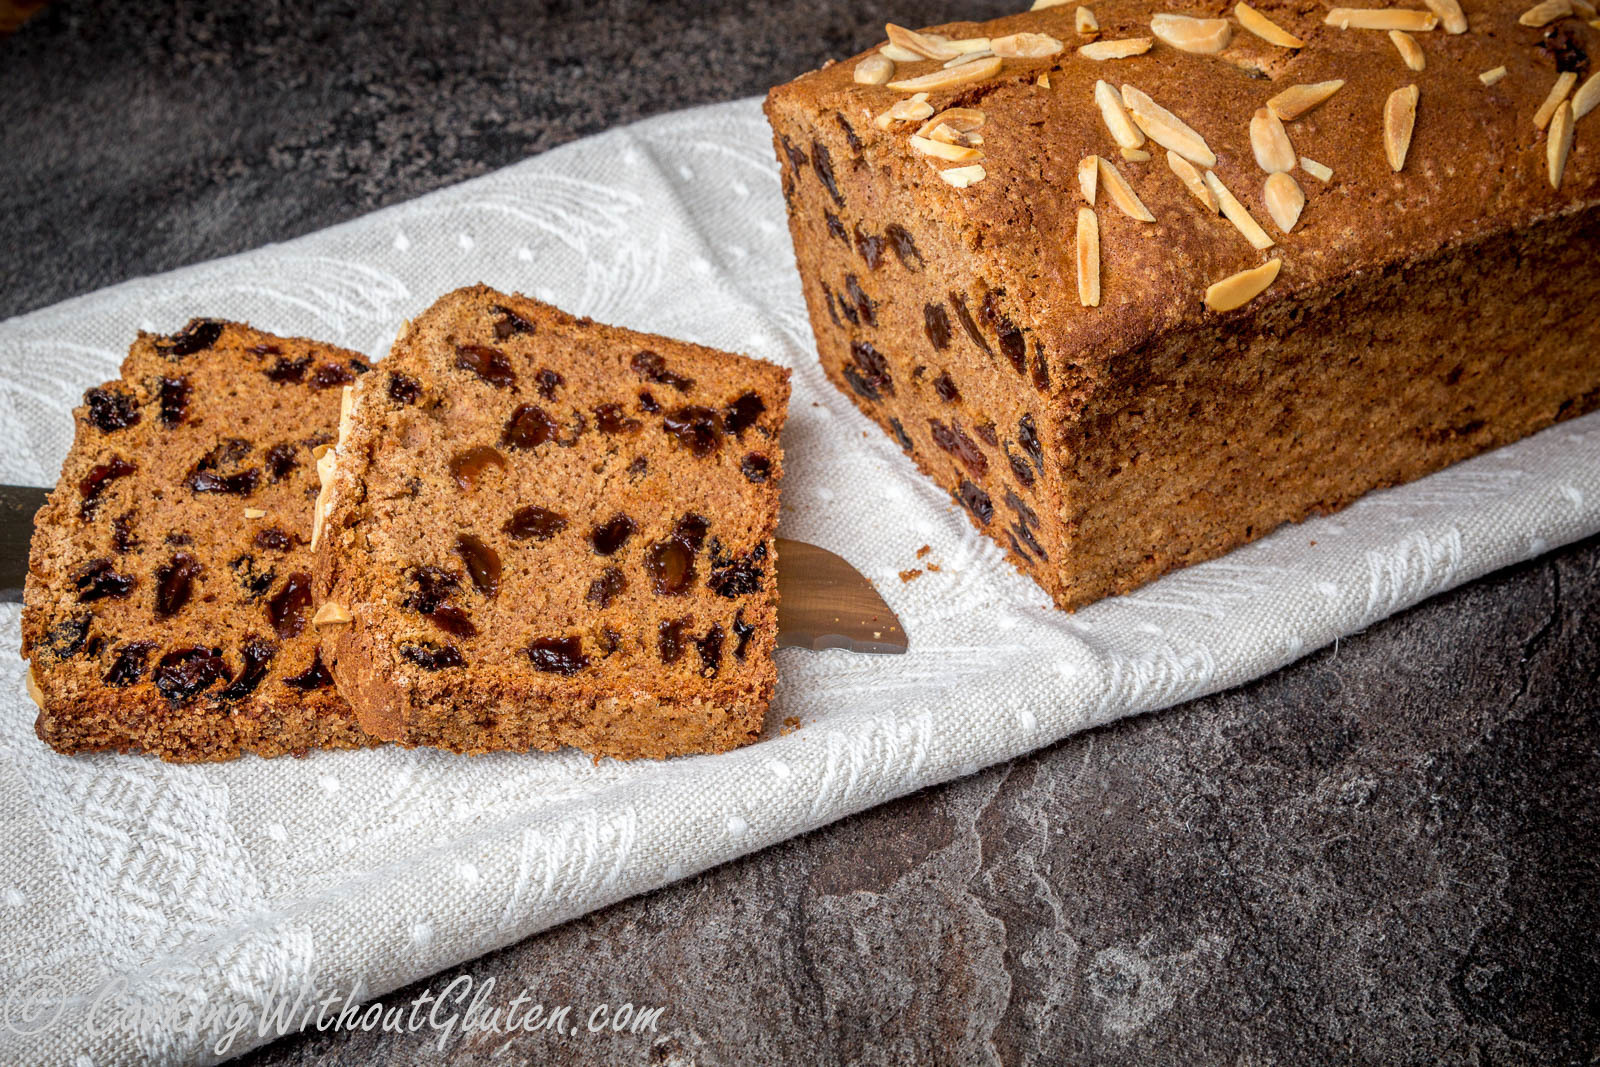 Gluten Free Buckwheat Loaf Cake with Walnuts and Dried Apricots